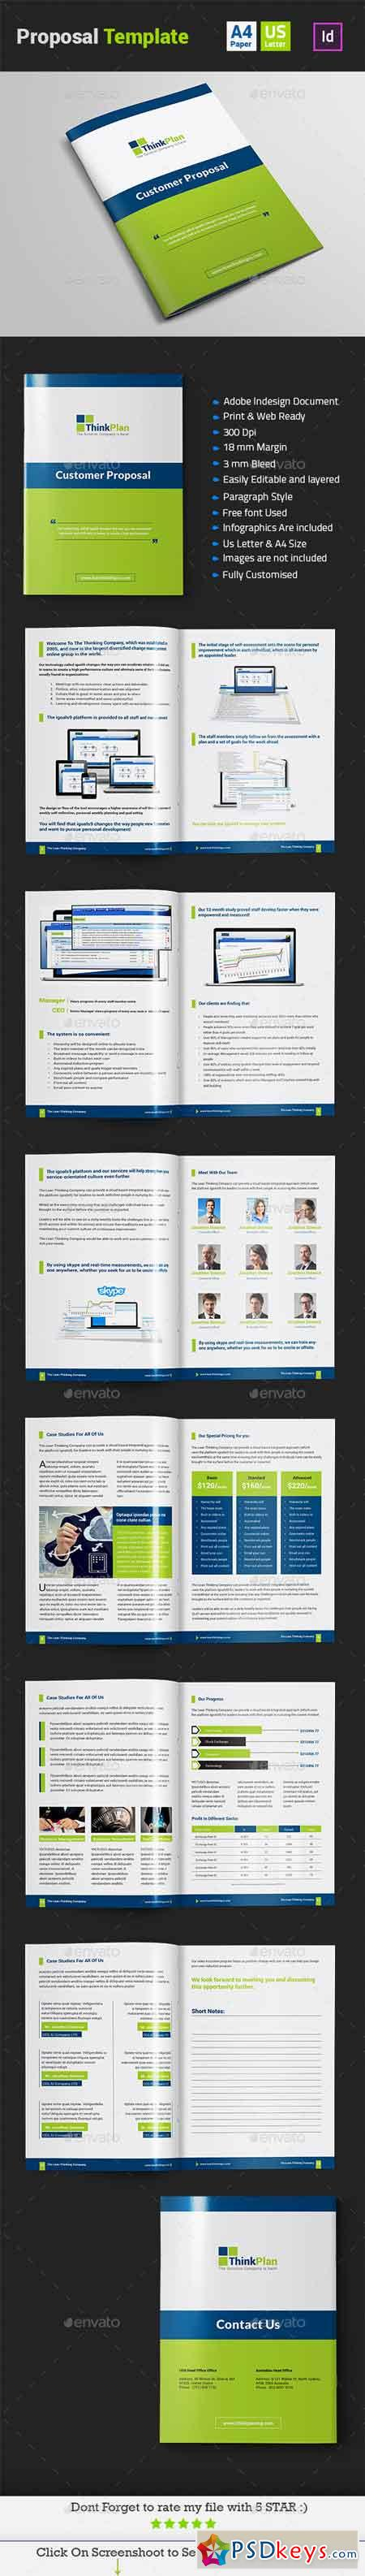 Proposal Template_Indesign Layout 11114374